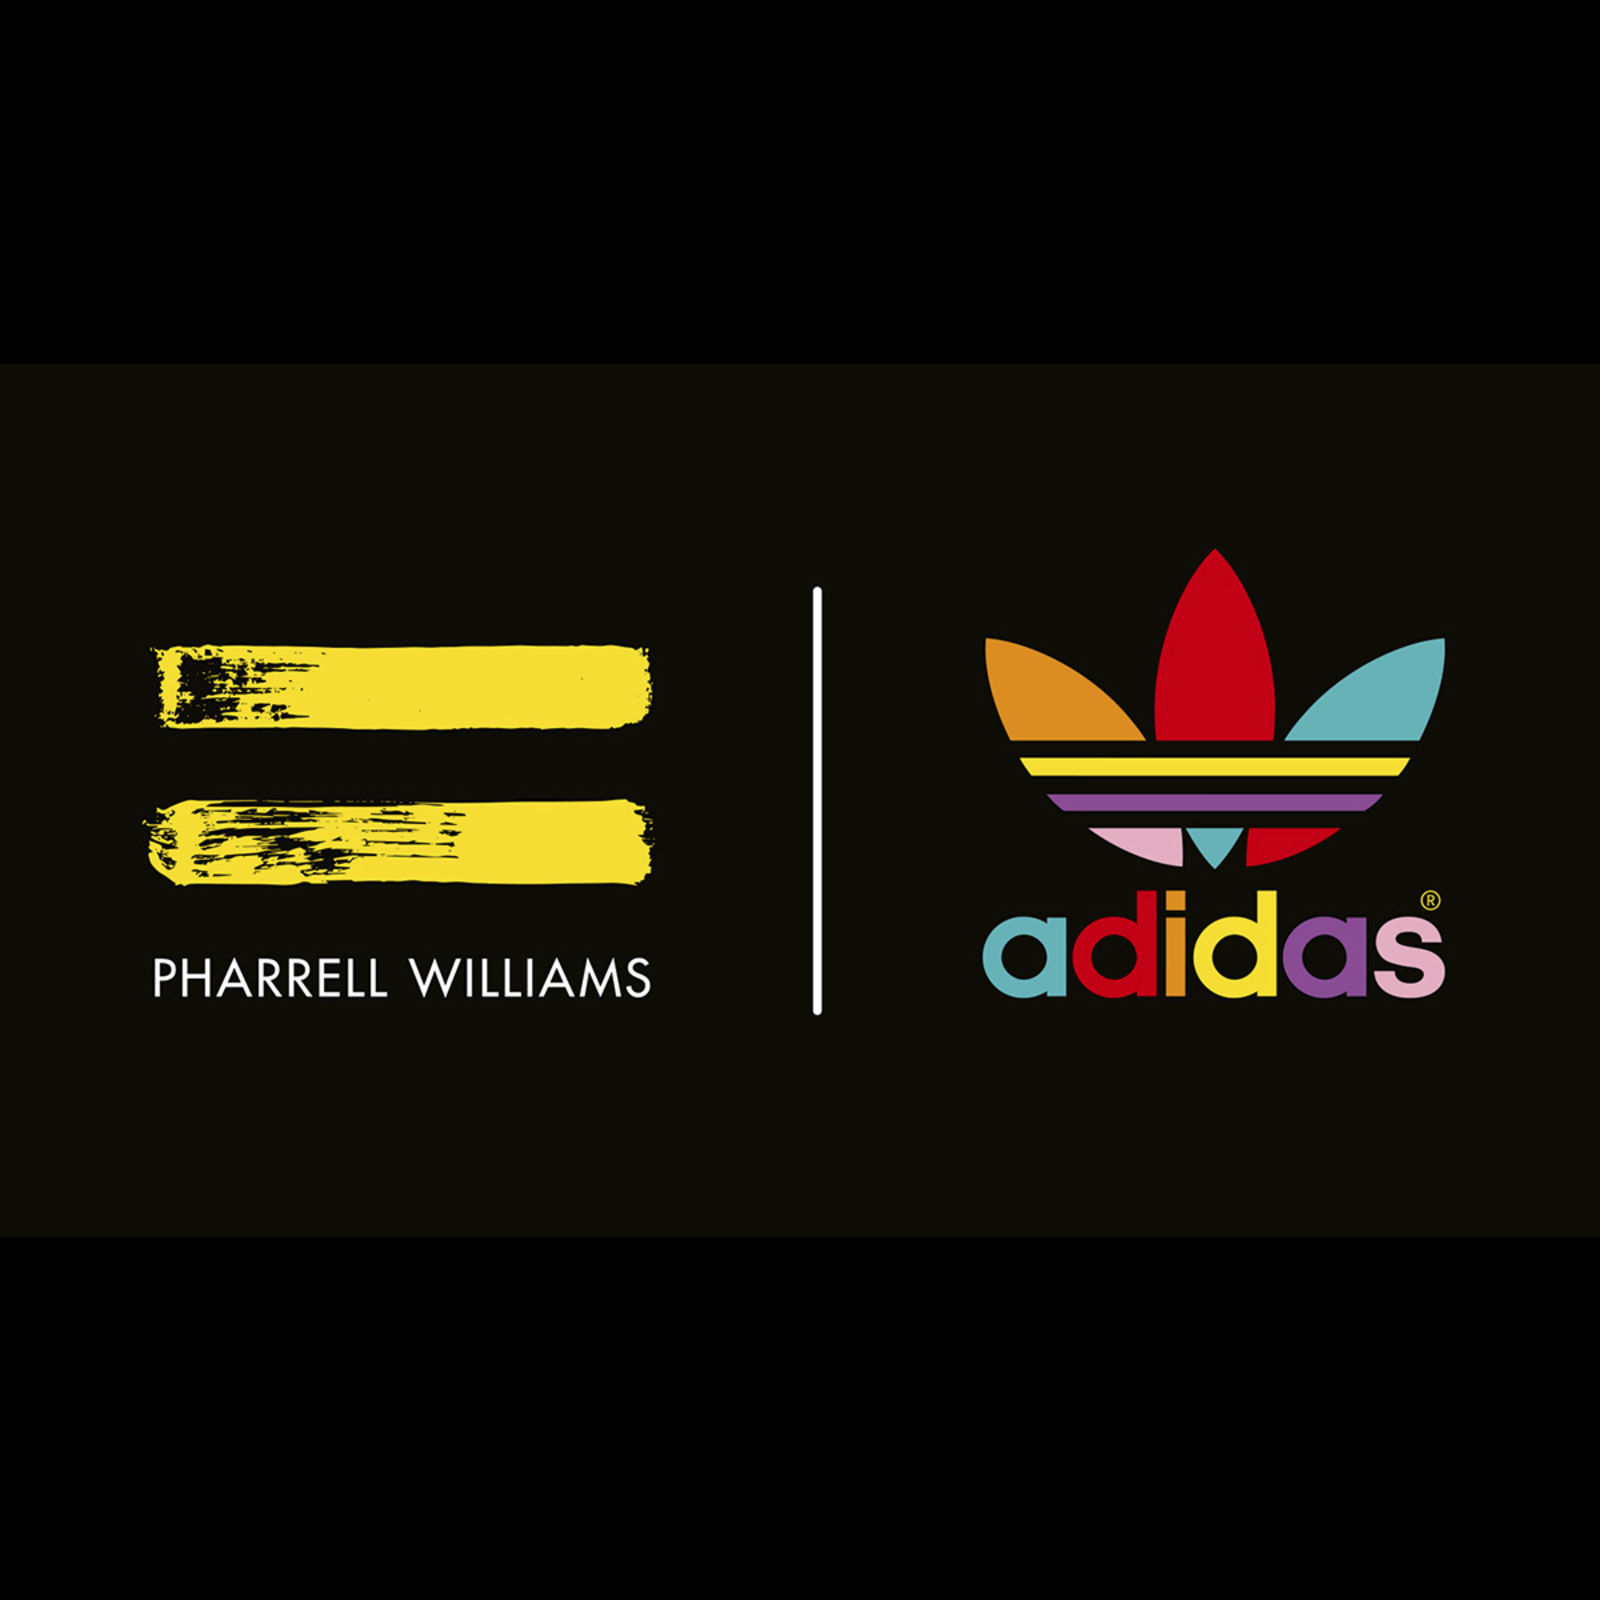 adidas x PHARRELL WILLIAMS